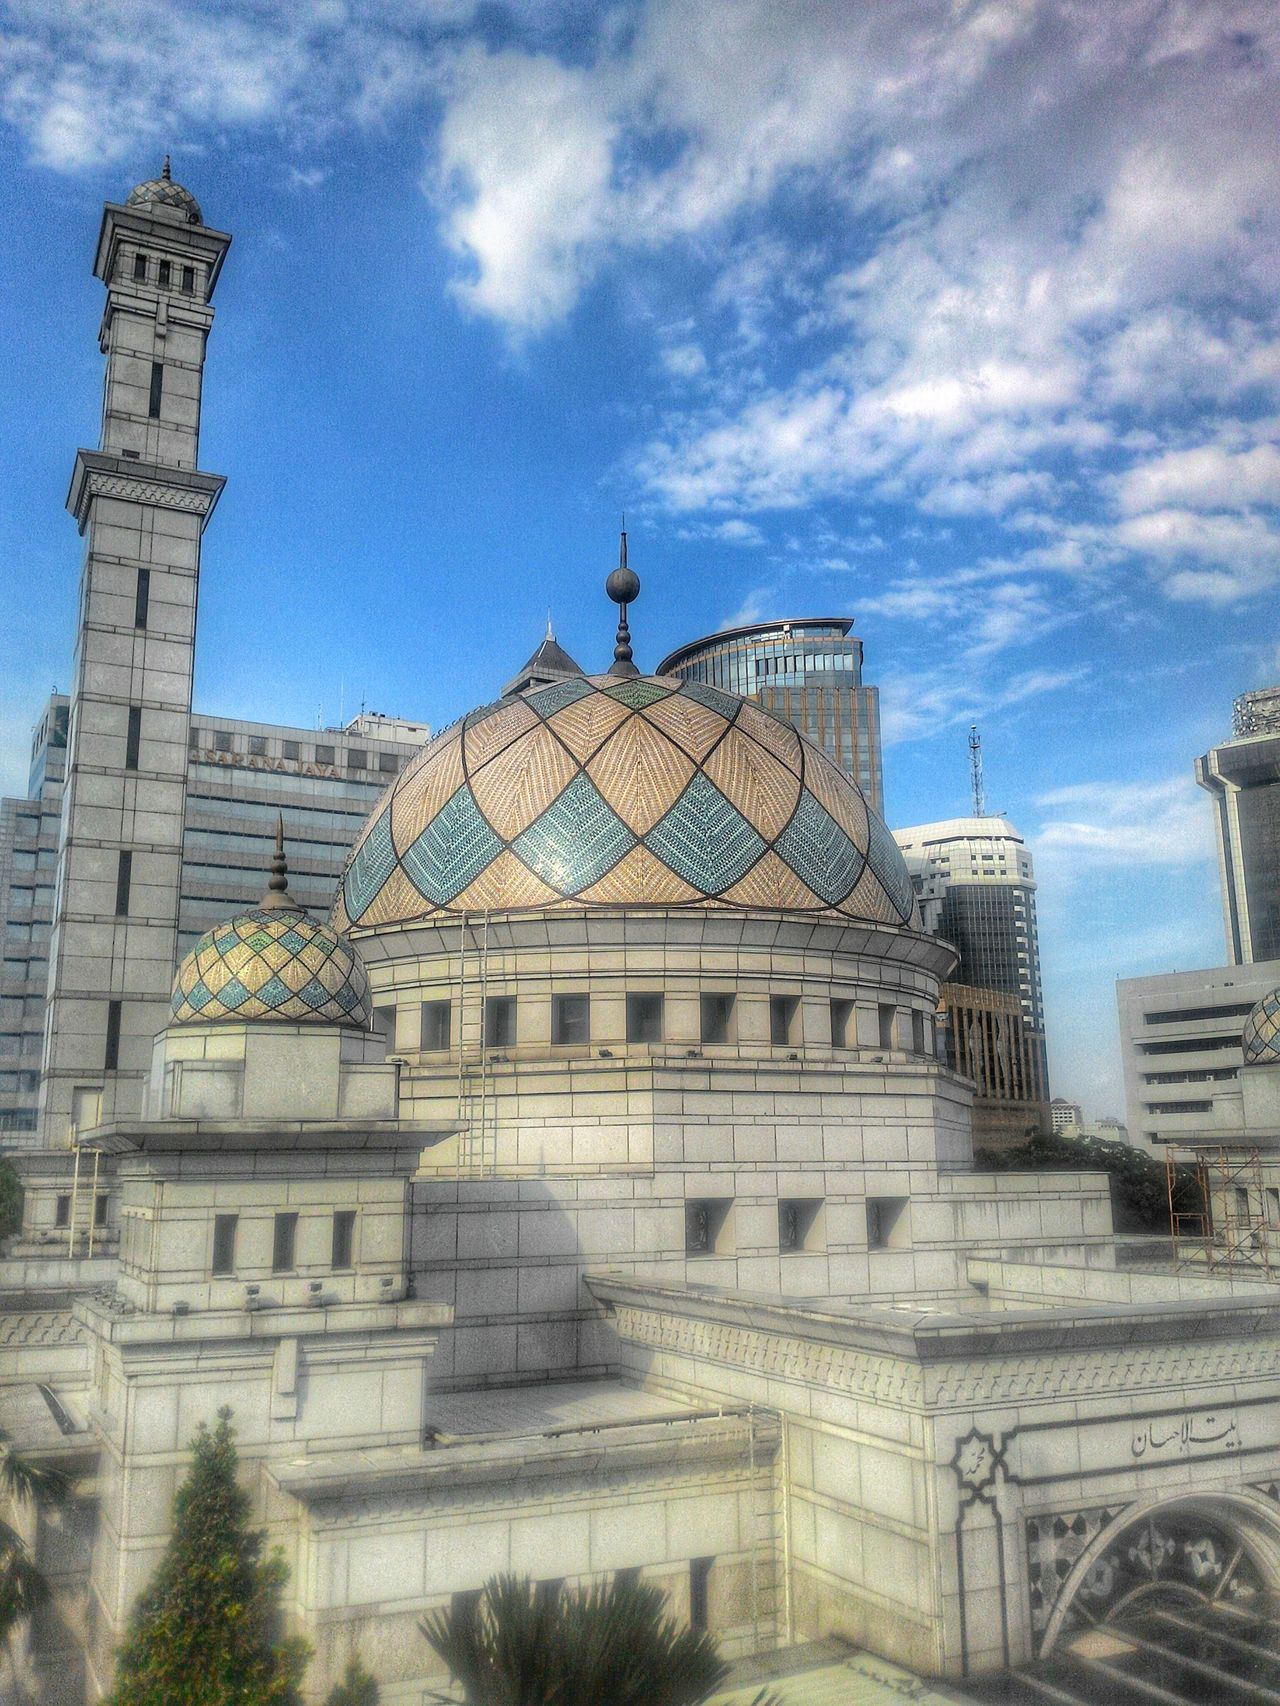 Built Structure Architecture Building Exterior Sky No People Low Angle View Day Outdoors INDONESIA Jakarta Mosque Thecitylight The City Light